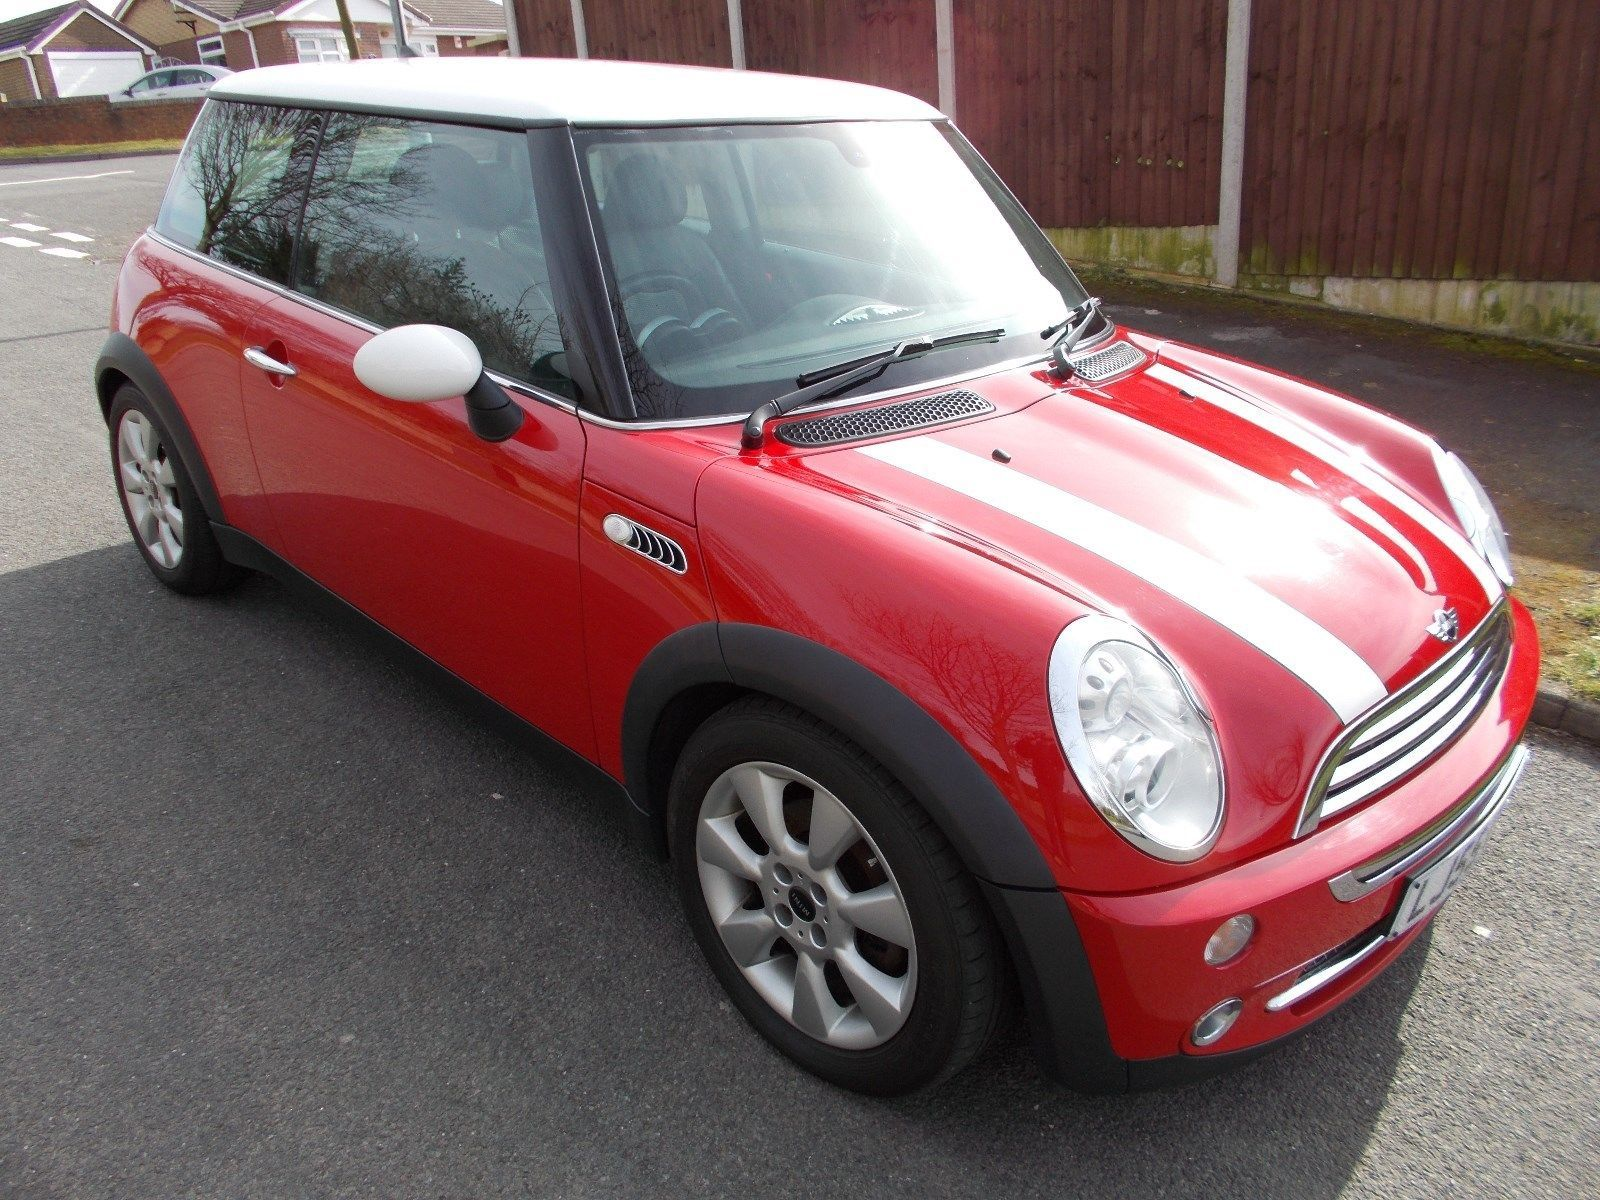 Ebay Mini Cooper 1600 2005 55 Plate Red White Black Leather Seats Stunning